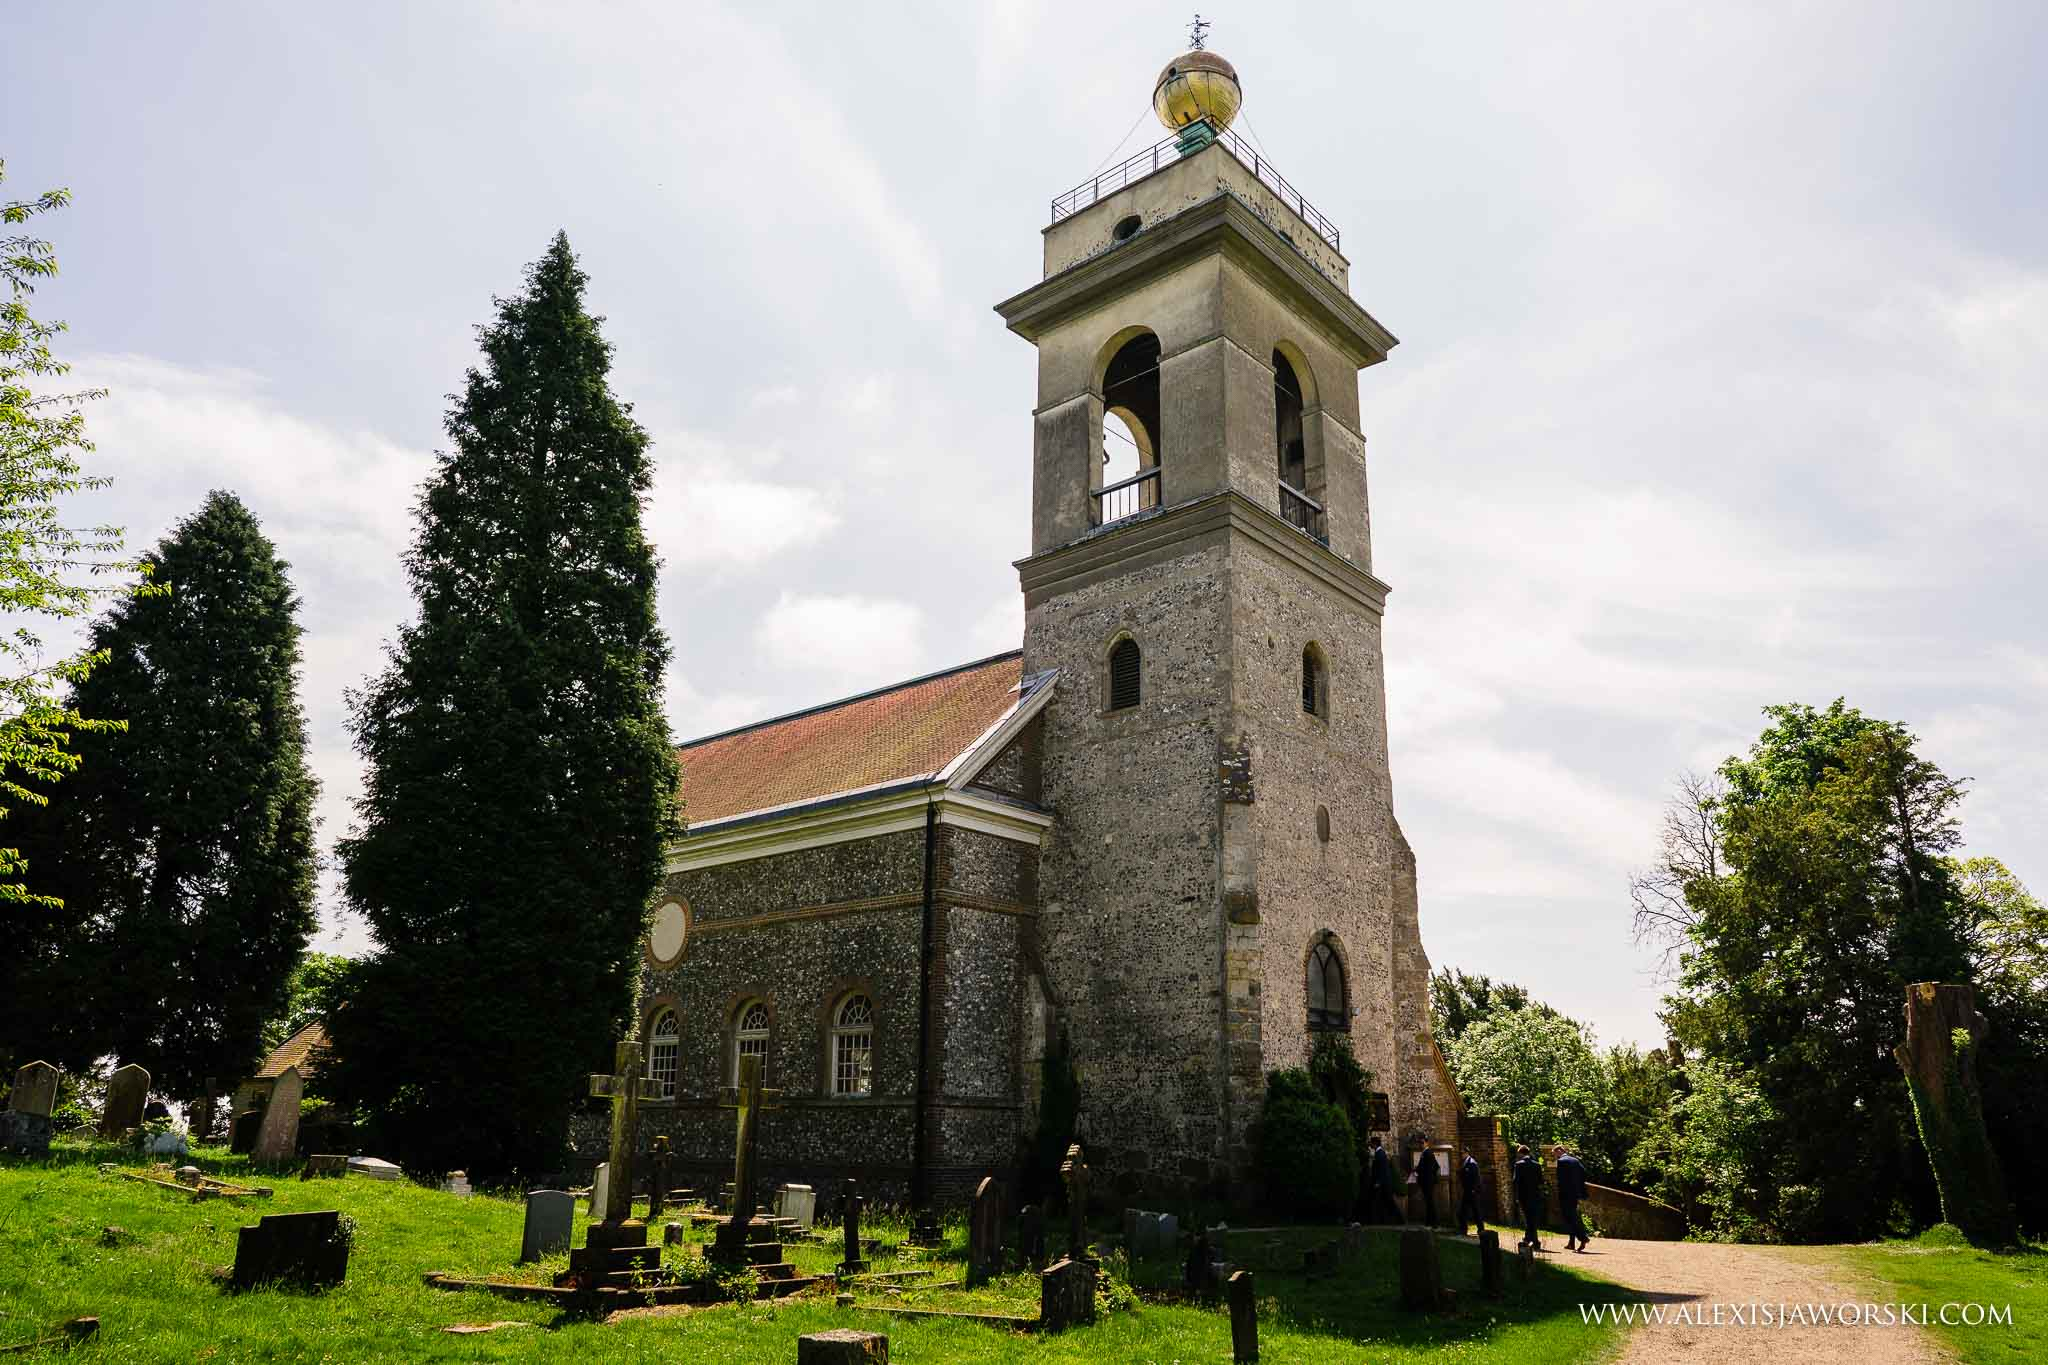 Church in West Wycombe